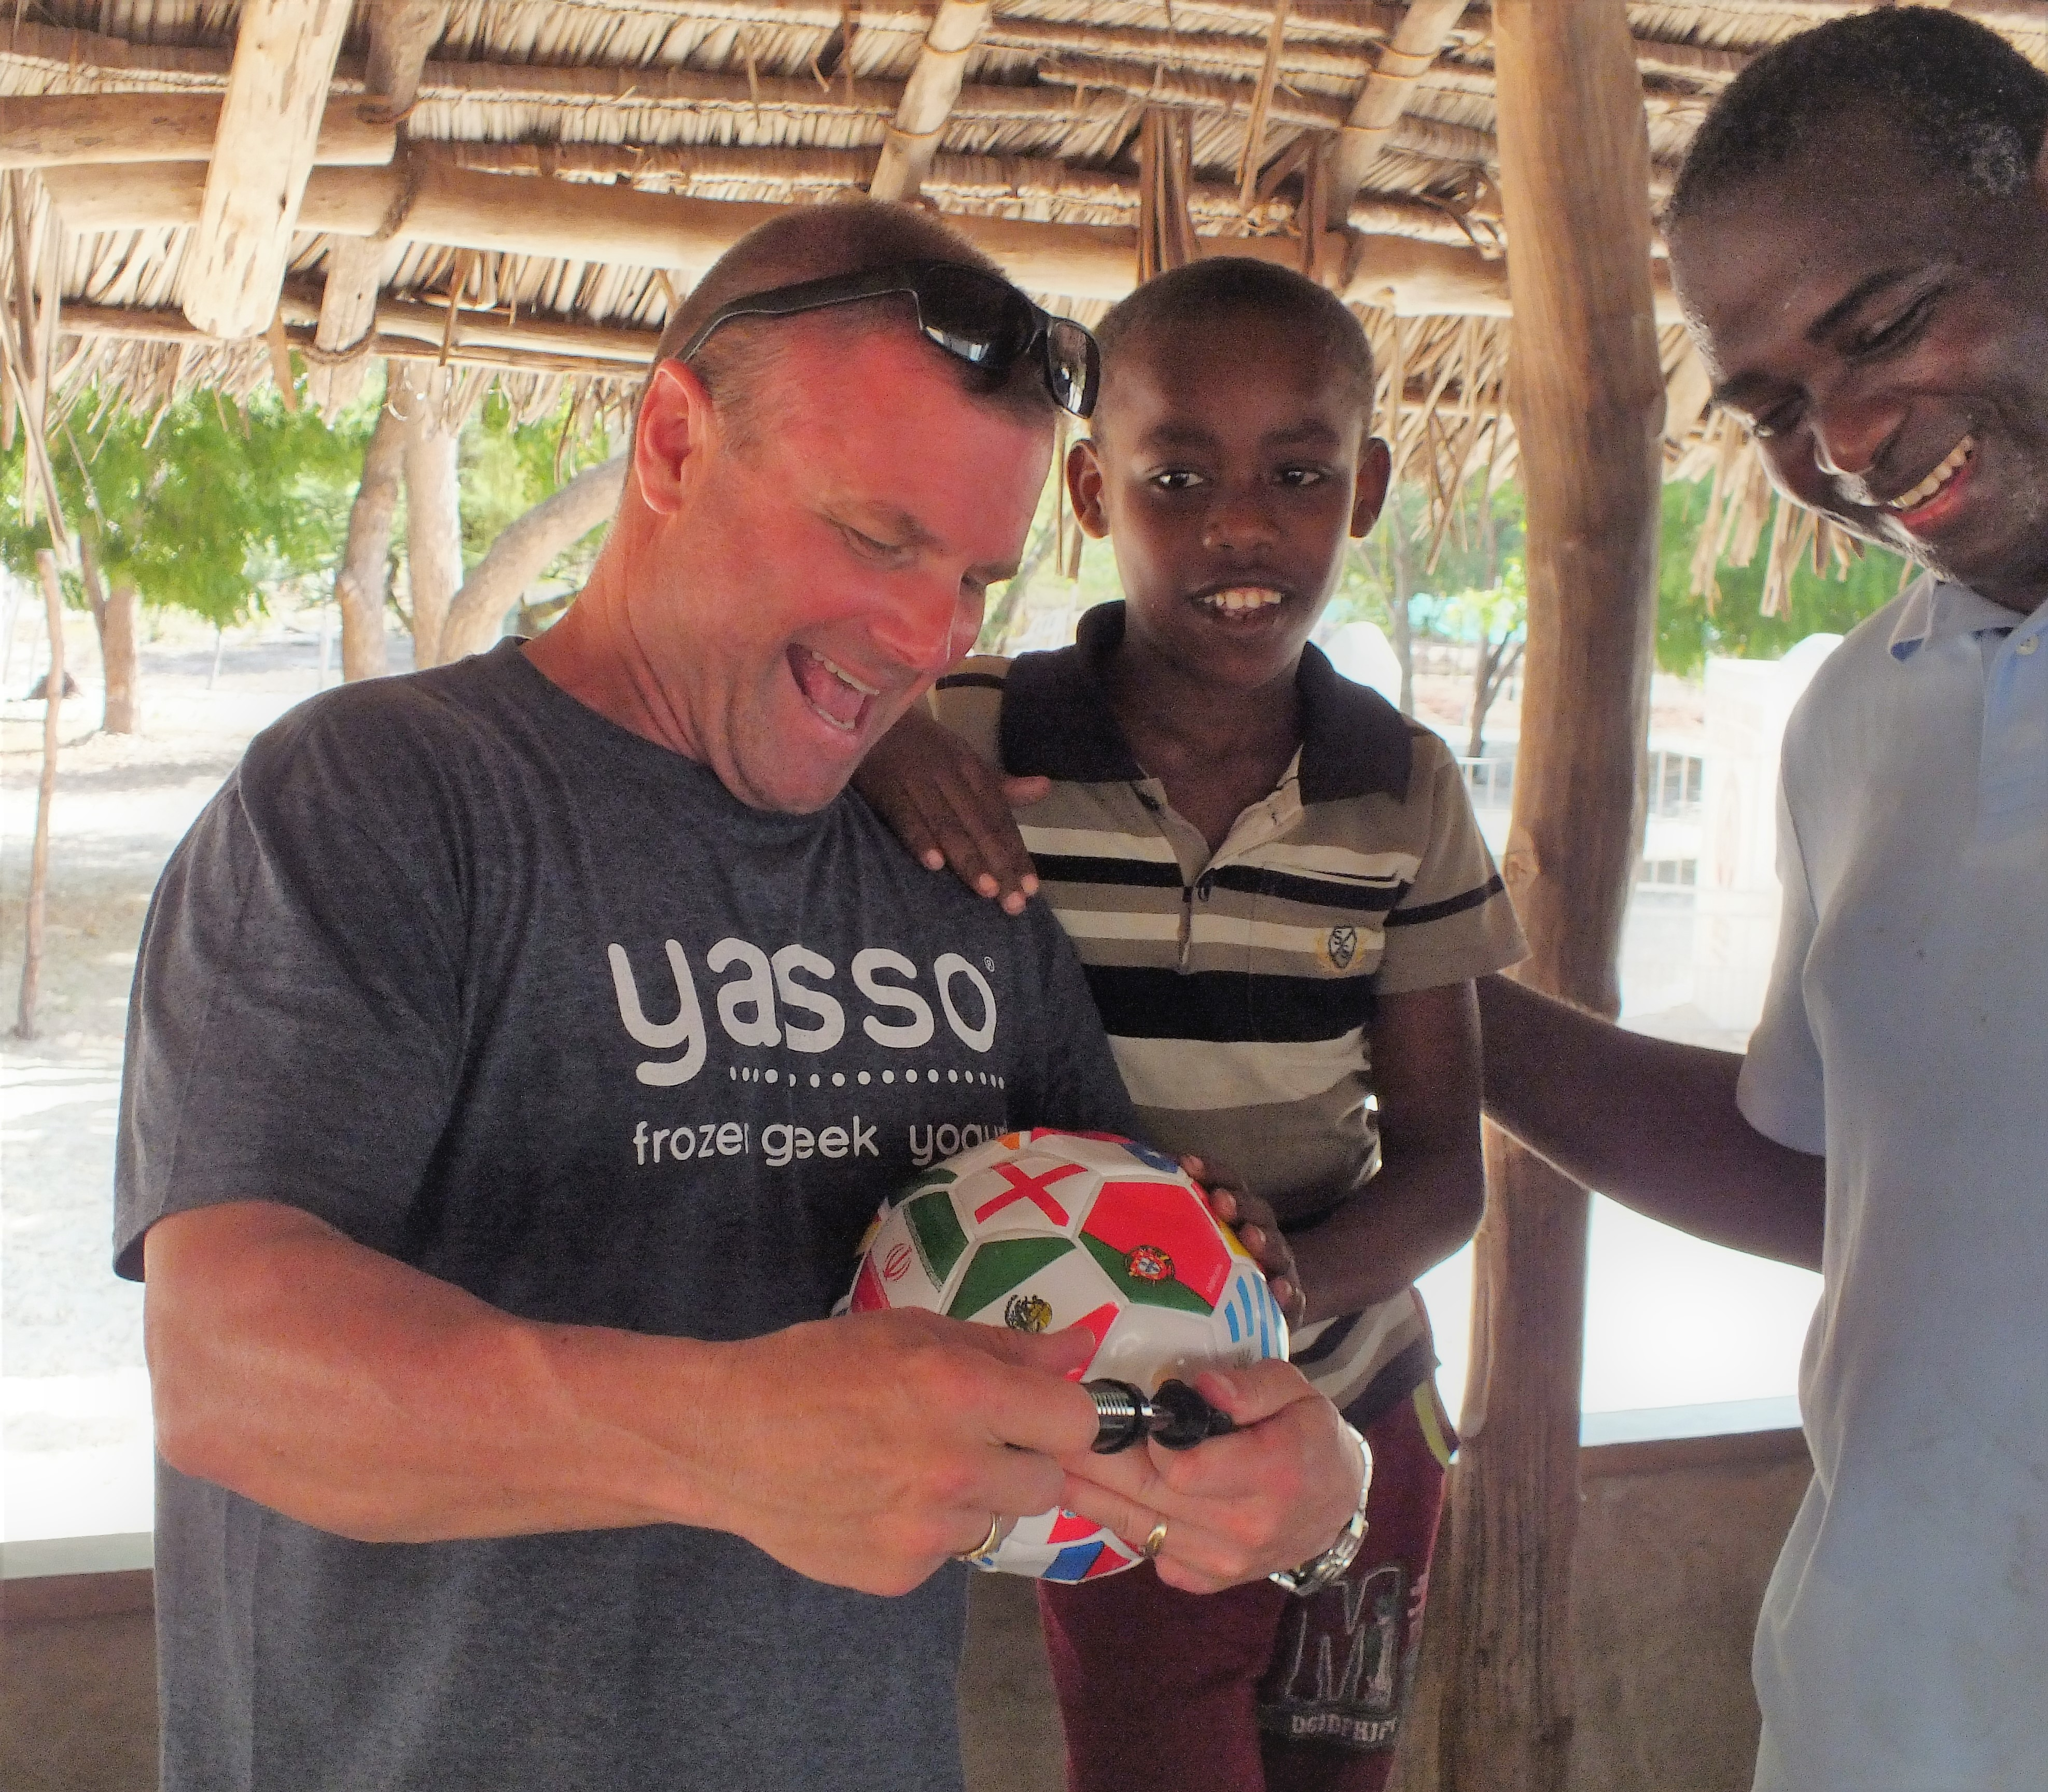 U.S. Army Chaplain (CPT) Donald A. Mooney, Combined Joint Task Force-Horn of Africa (CJTF-HOA) Religious Affairs, and U.S. Navy Petty Officer 1st Class Joseph Pendantonga, Chaplain's Assistant, CJTF-HOA Religious Affairs, pump up a soccer ball to distribute at the Anidan Children's House in Lamu, Kenya Dec. 23, 2016. U.S. Navy Seabees and CJTF-HOA Religious Affairs personnel are assigned to Kenya to assist with repairs and construction efforts at the Anidan Children's Home. (Courtesy Photo)